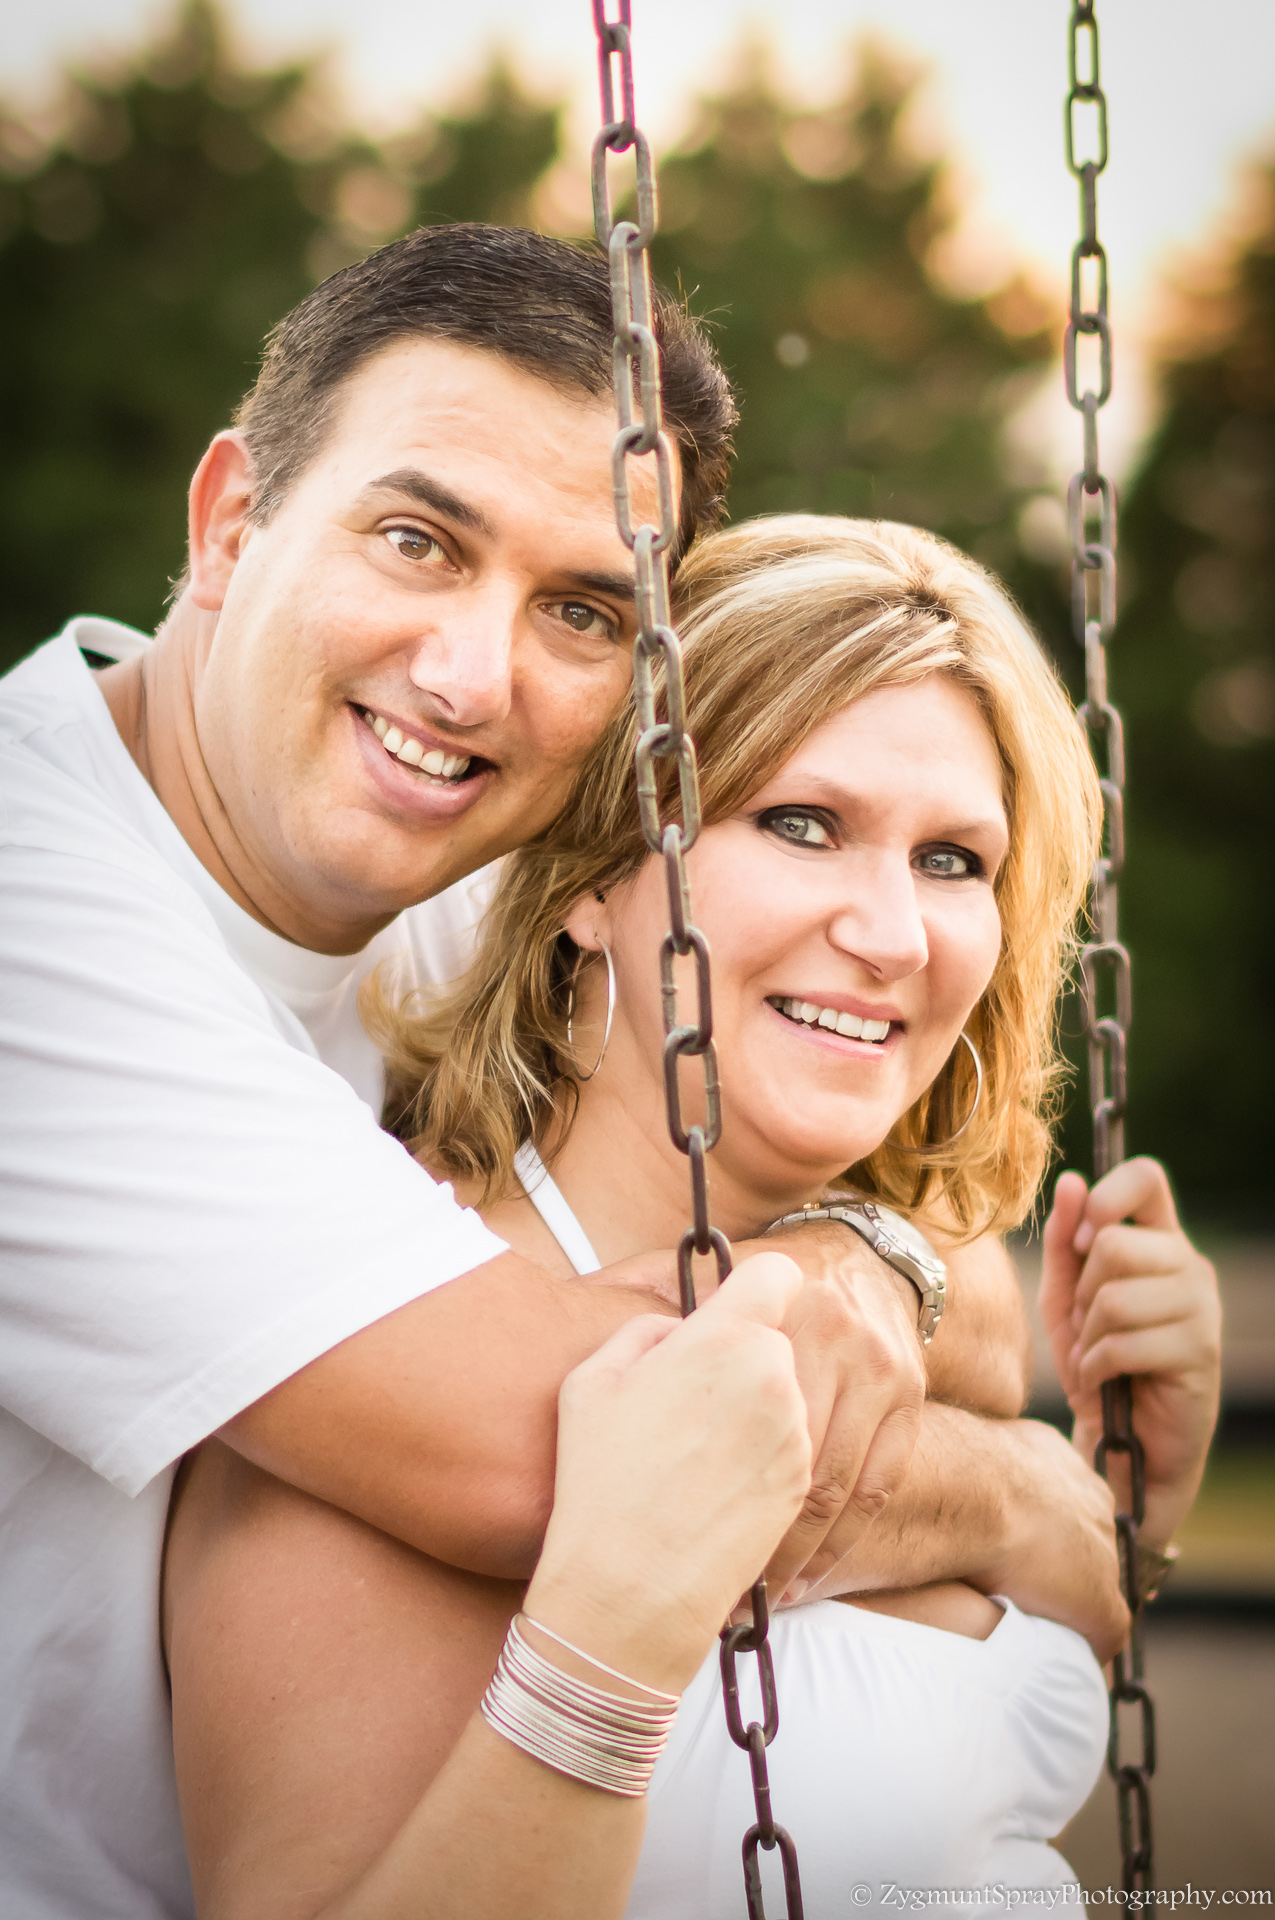 Myssi and Rikki Couples Photoshoot - 8.20.2014-16.jpg